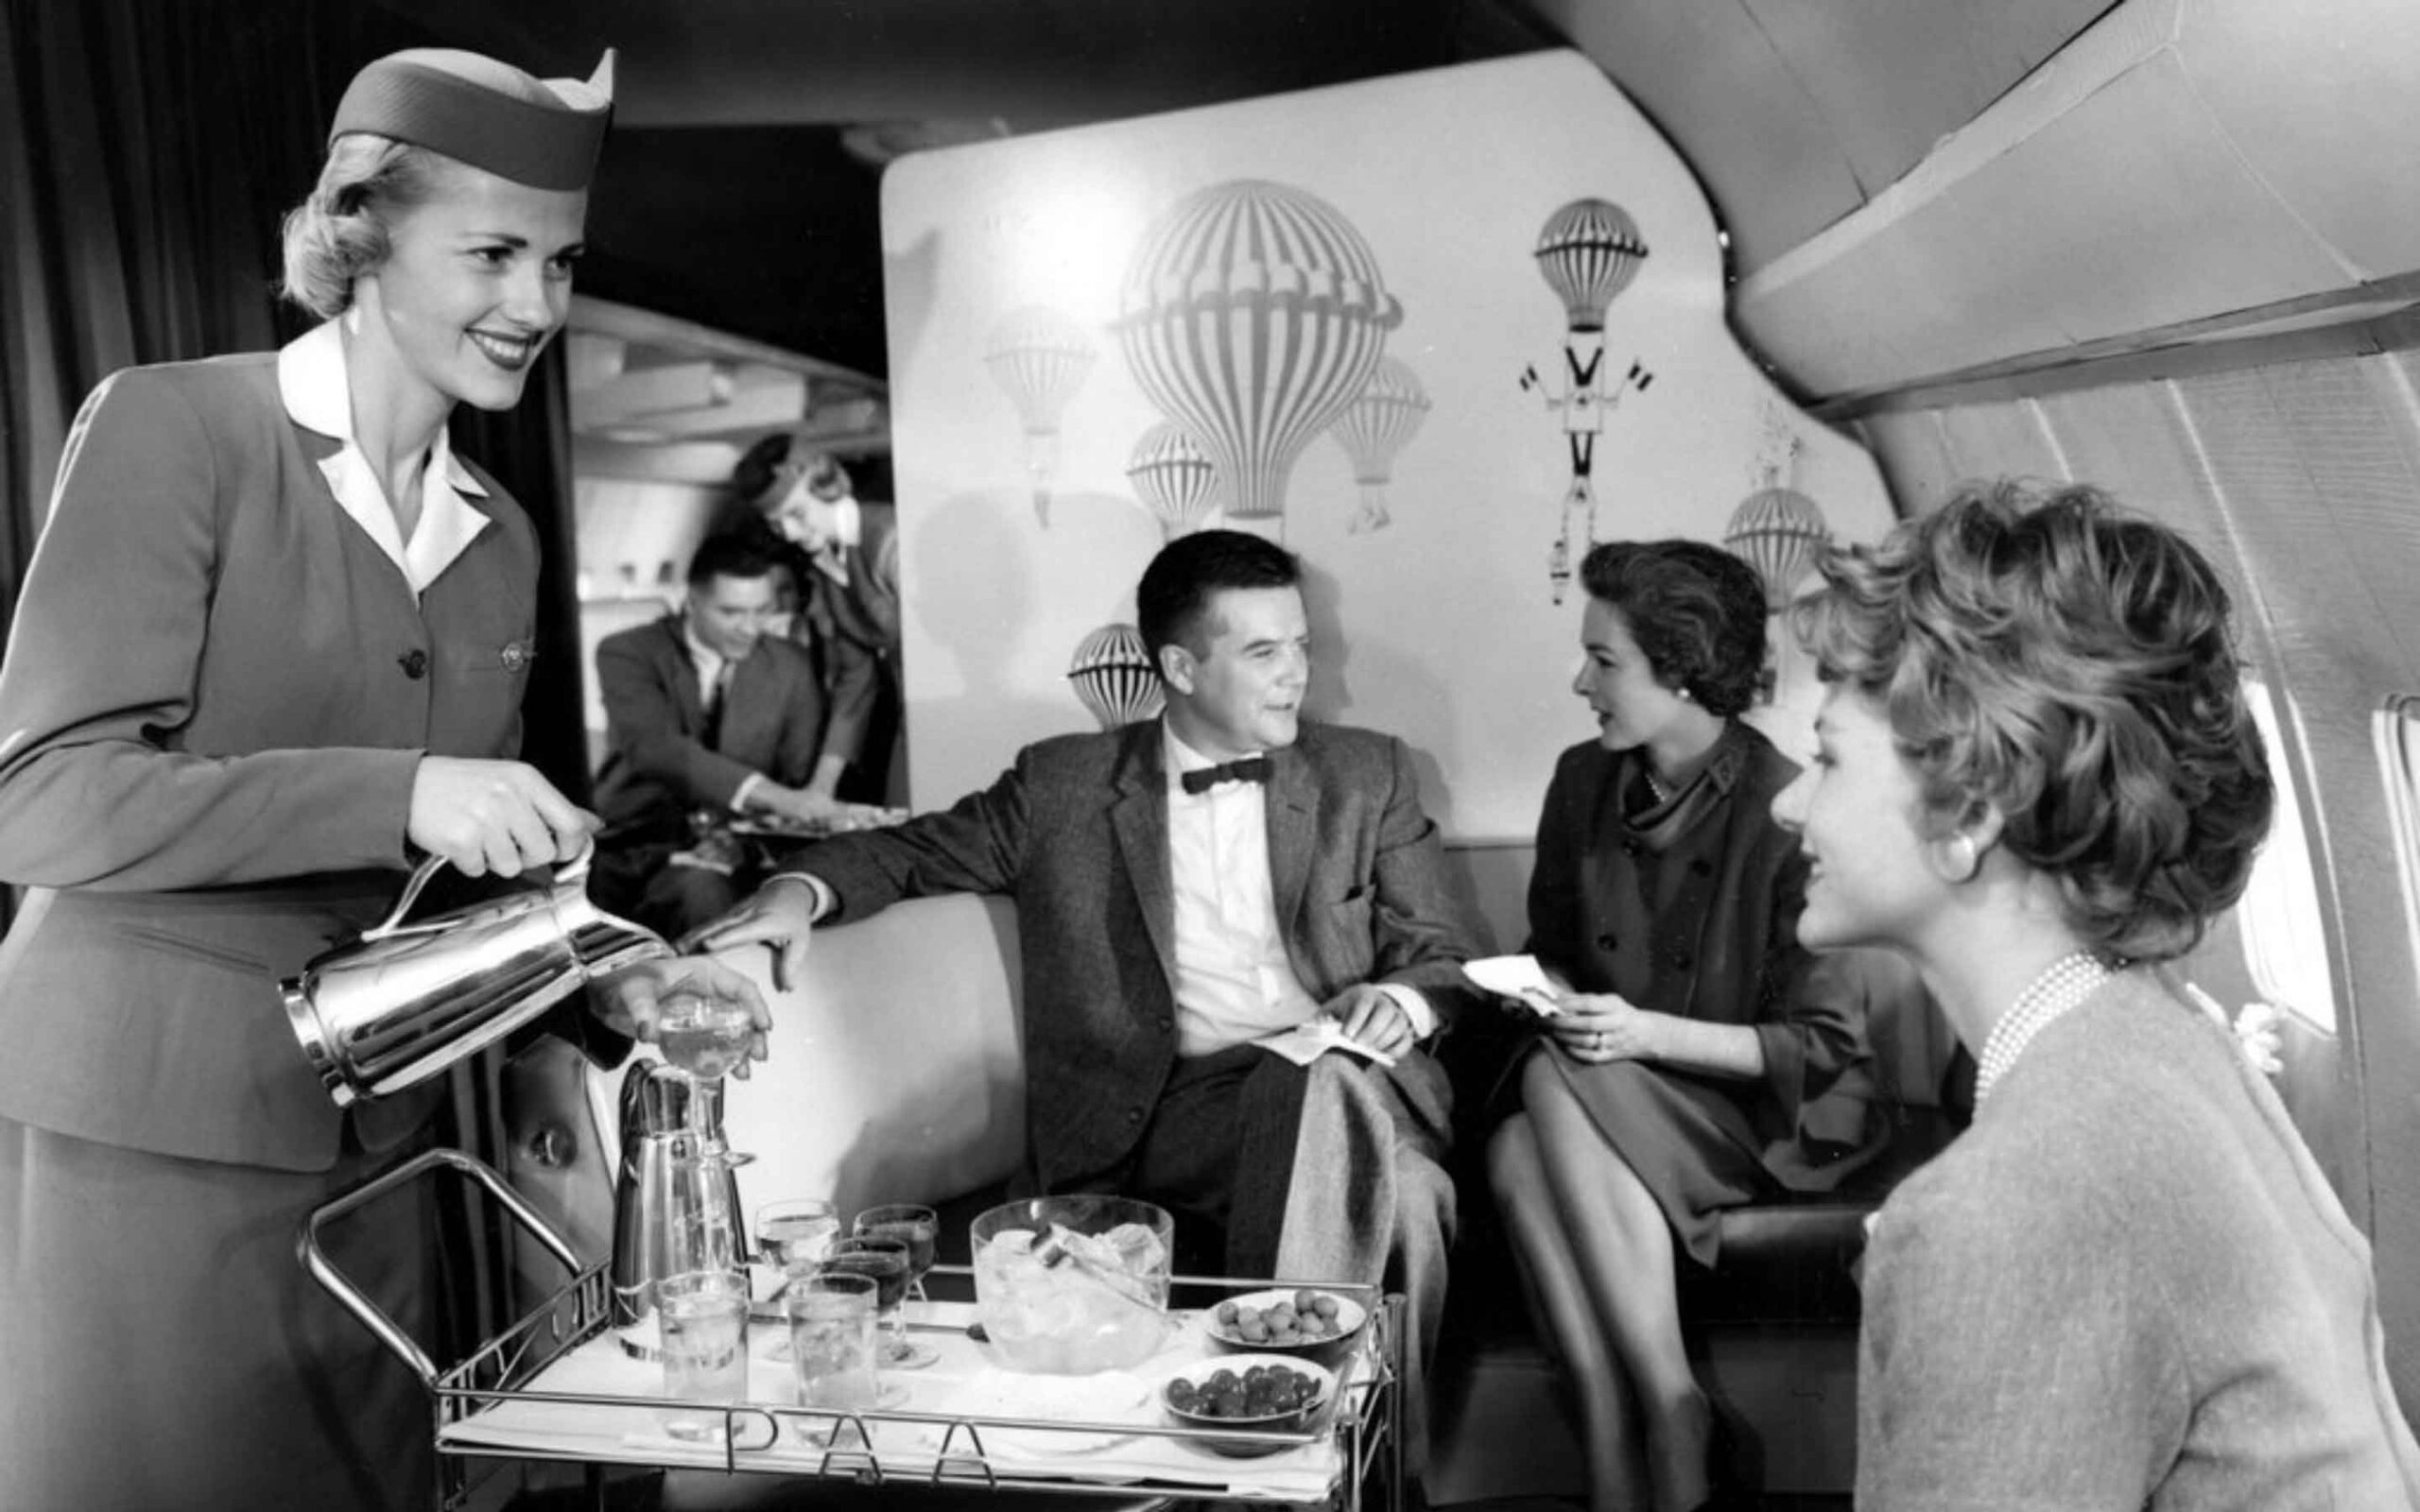 The Nostalgic Appeal of Vintage Air Travel Photos